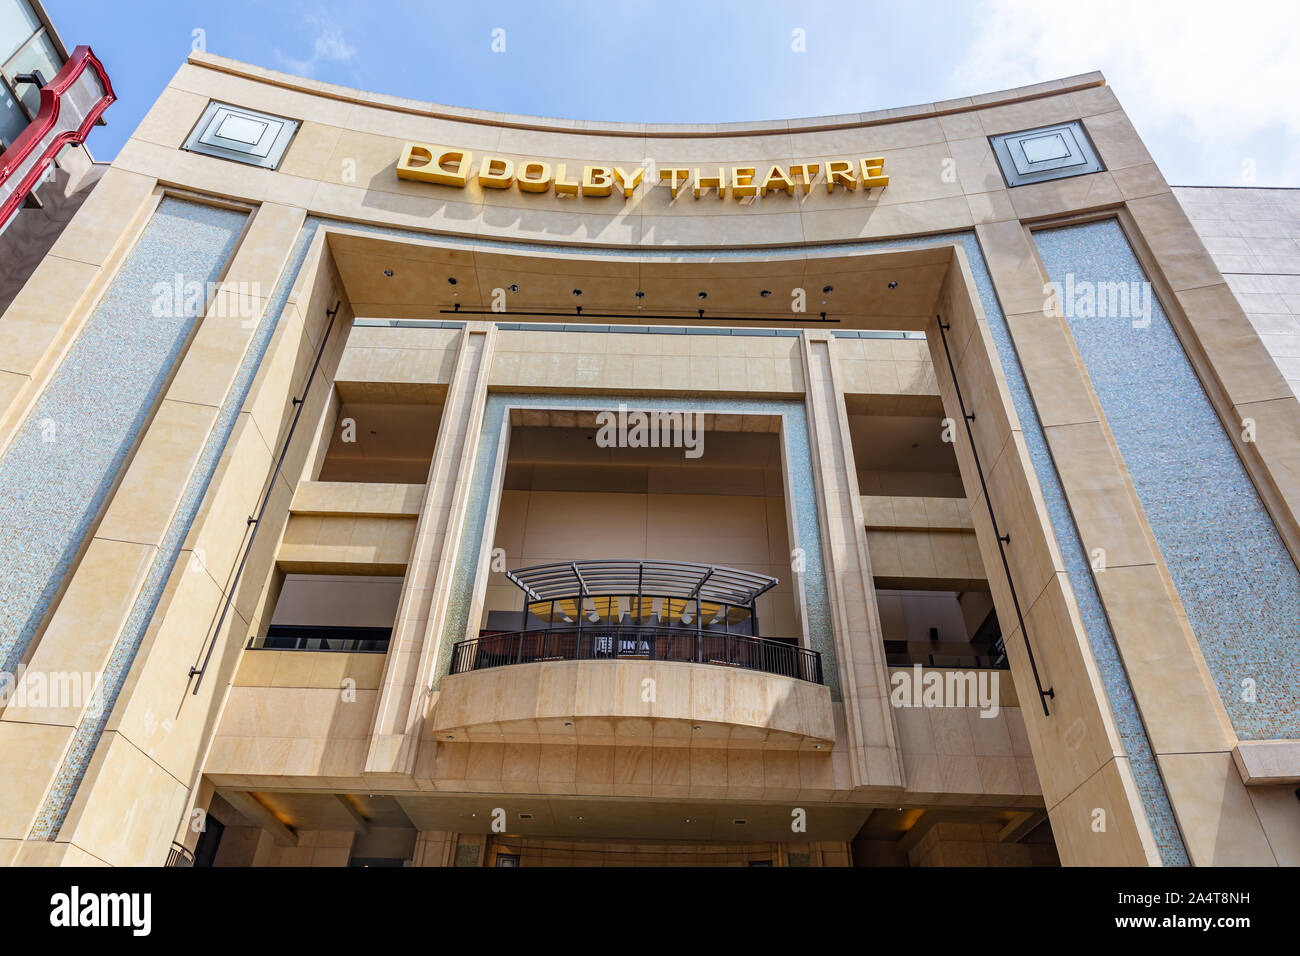 Los Angeles, California, USA. May 31, 2019. Front upwards view of the Dolby Movie Theatre, also known as the Kodak Movie Theatre, located in LA Stock Photo